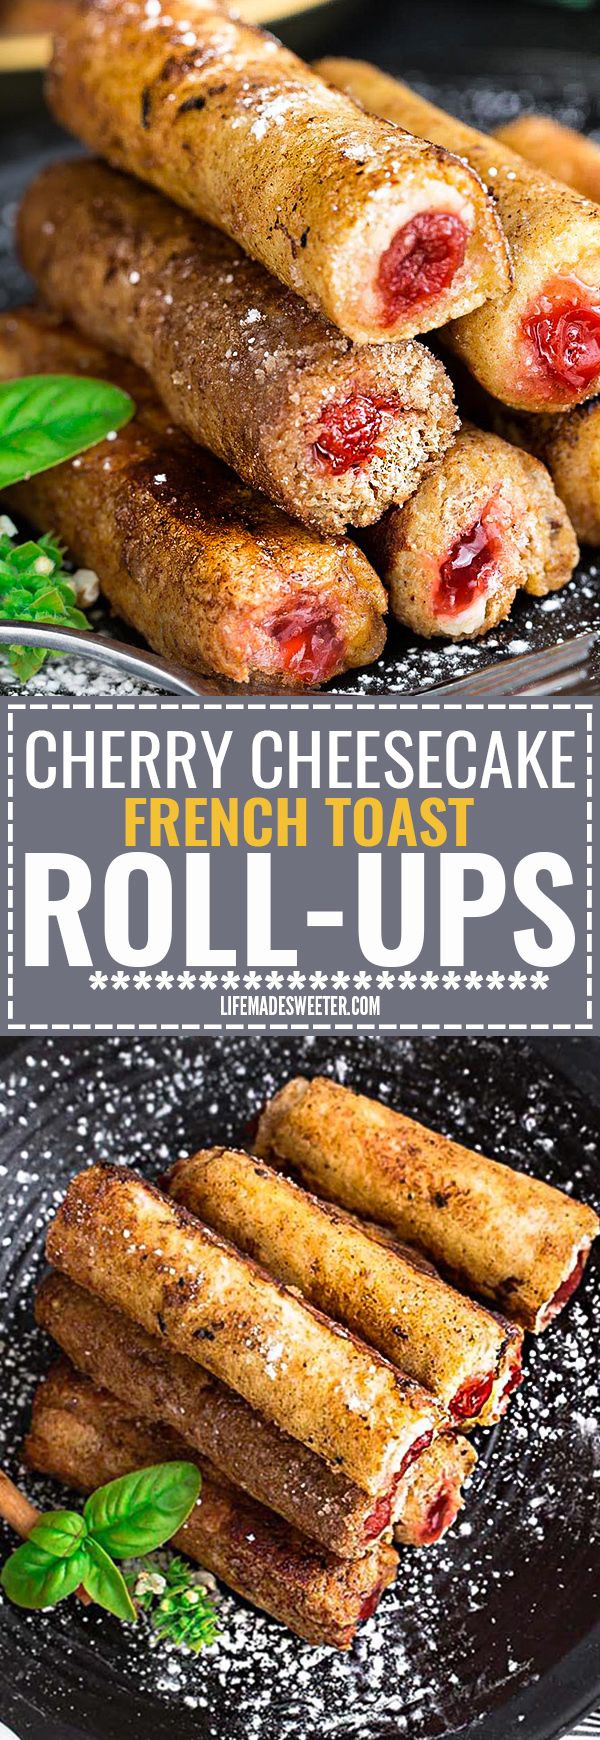 Cherry Cheesecake French Toast Roll Ups